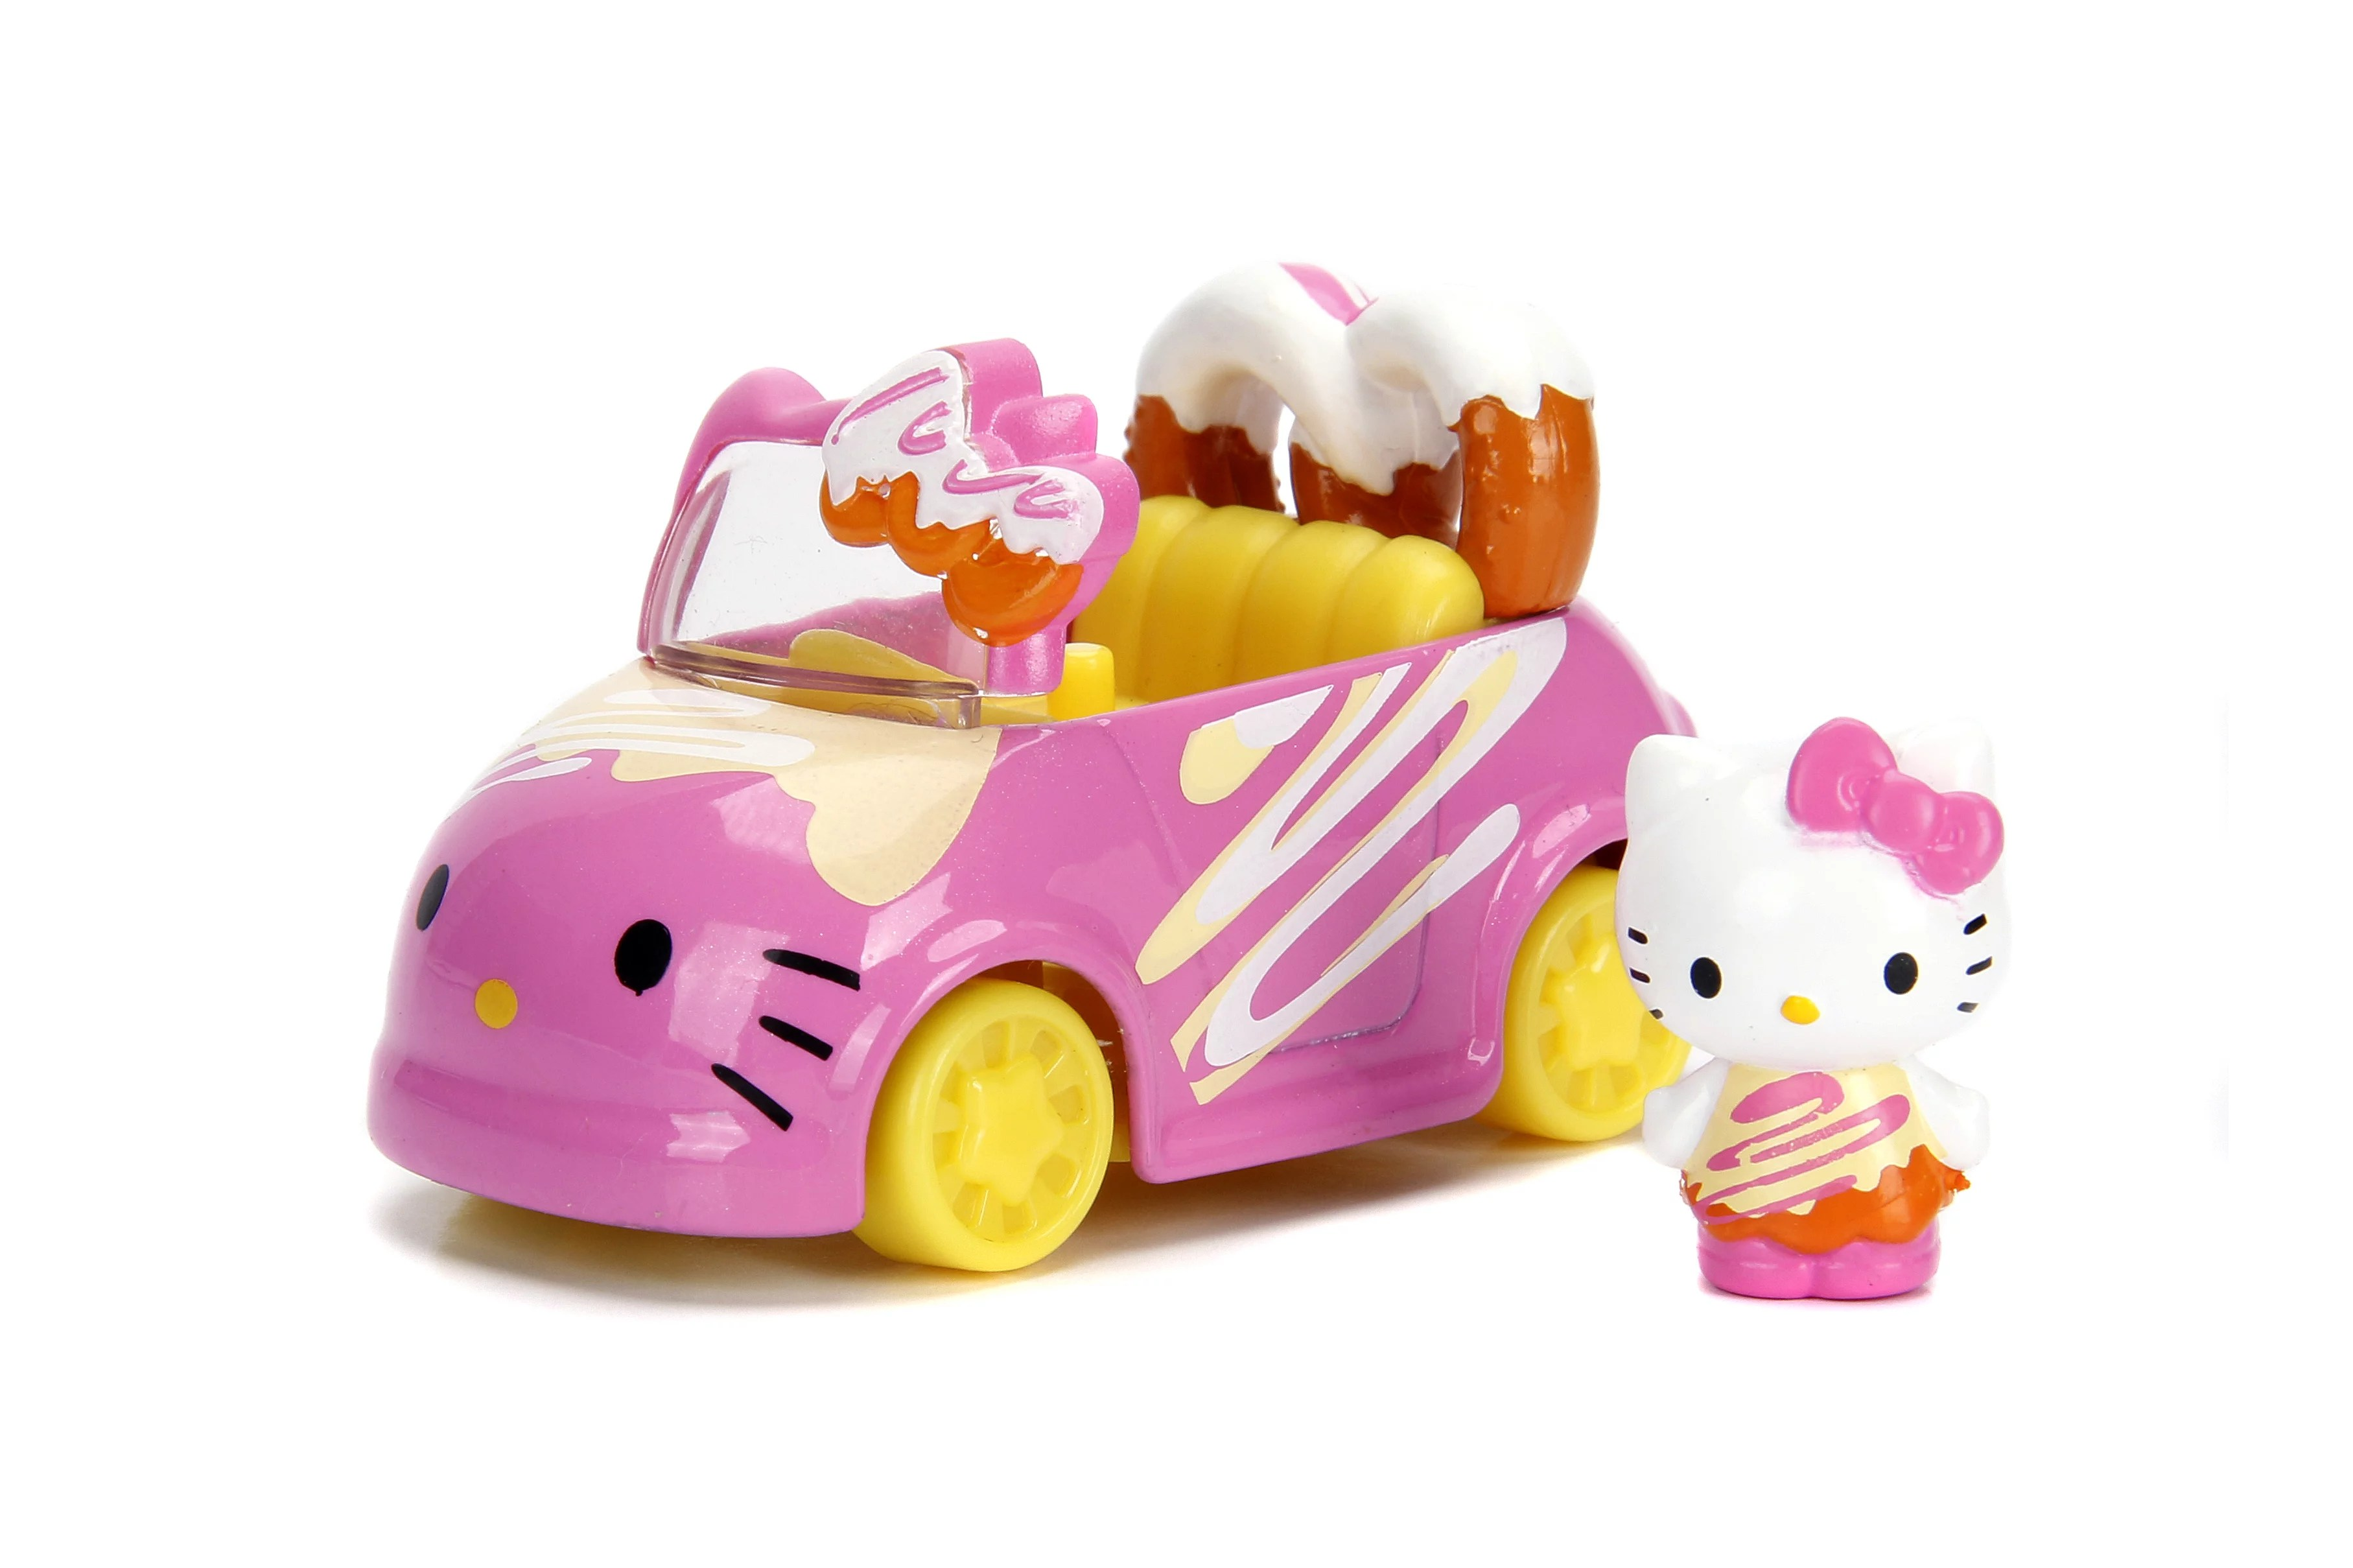 Dazzle Dash Hello Kitty Single Pack Die Cast Vehicle By